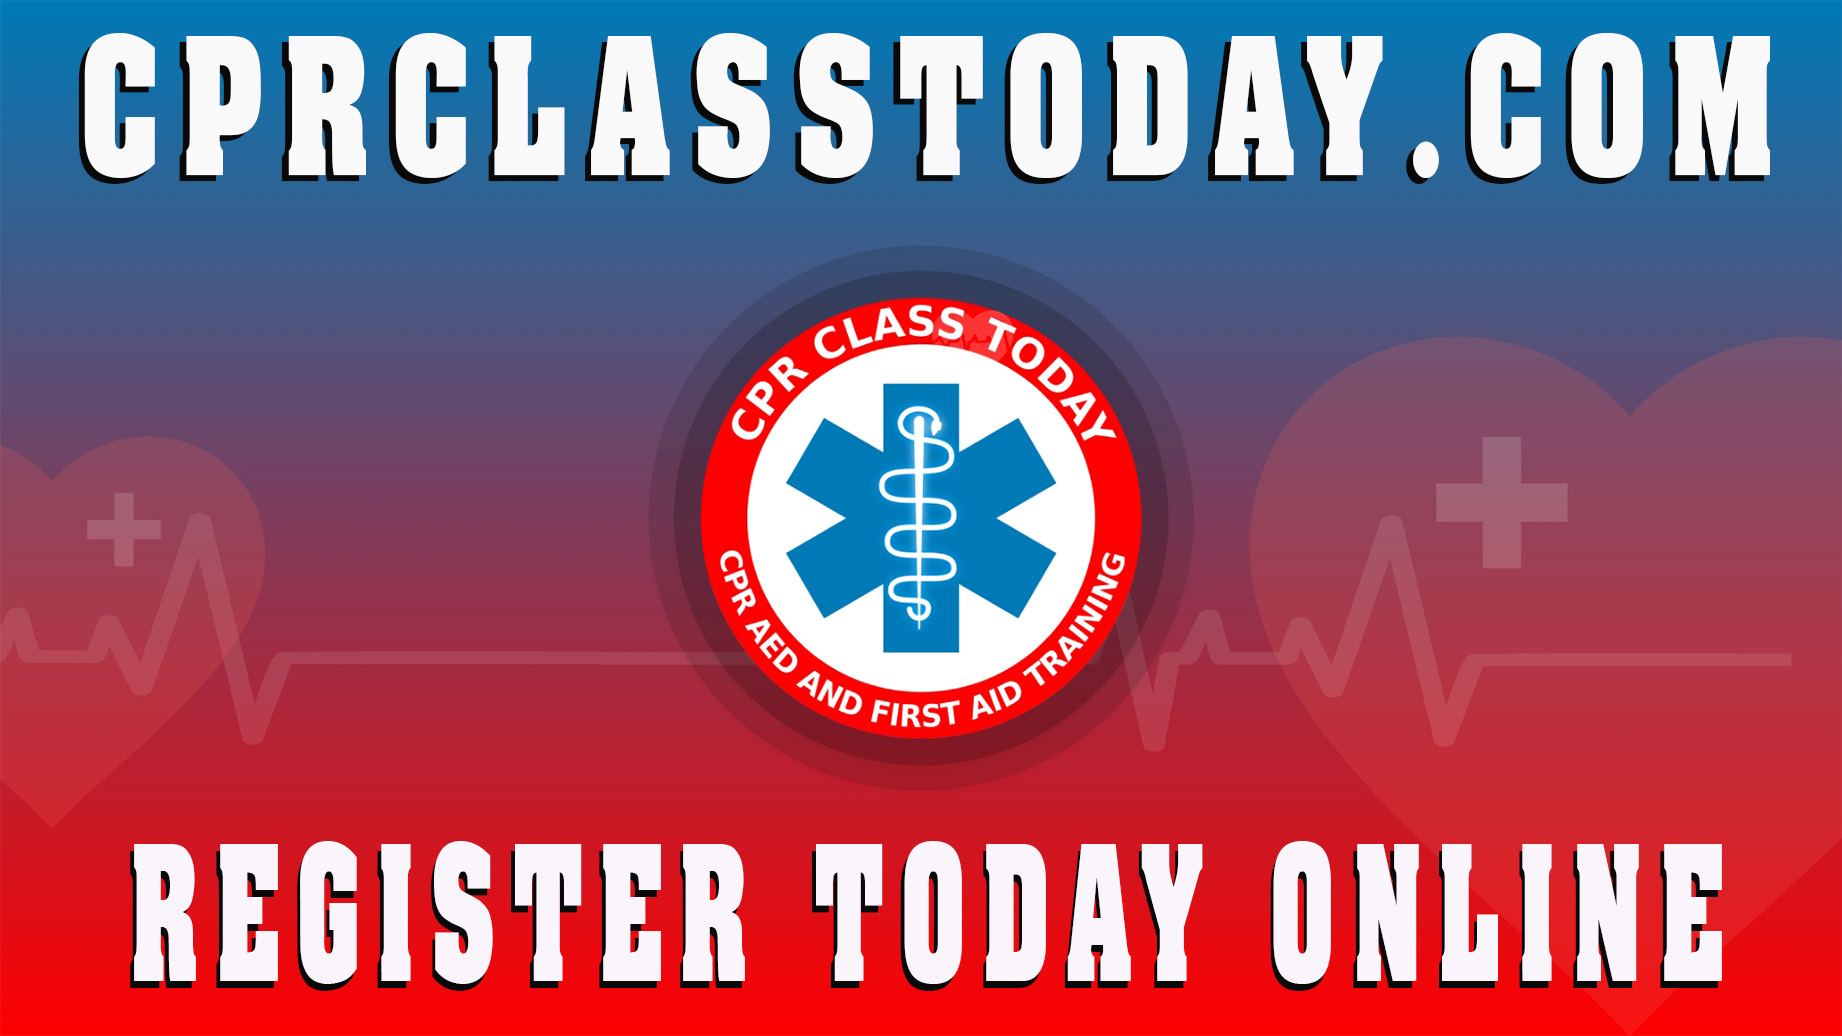 CPR Class Today is an Authorized Training Site of The American Heart Association